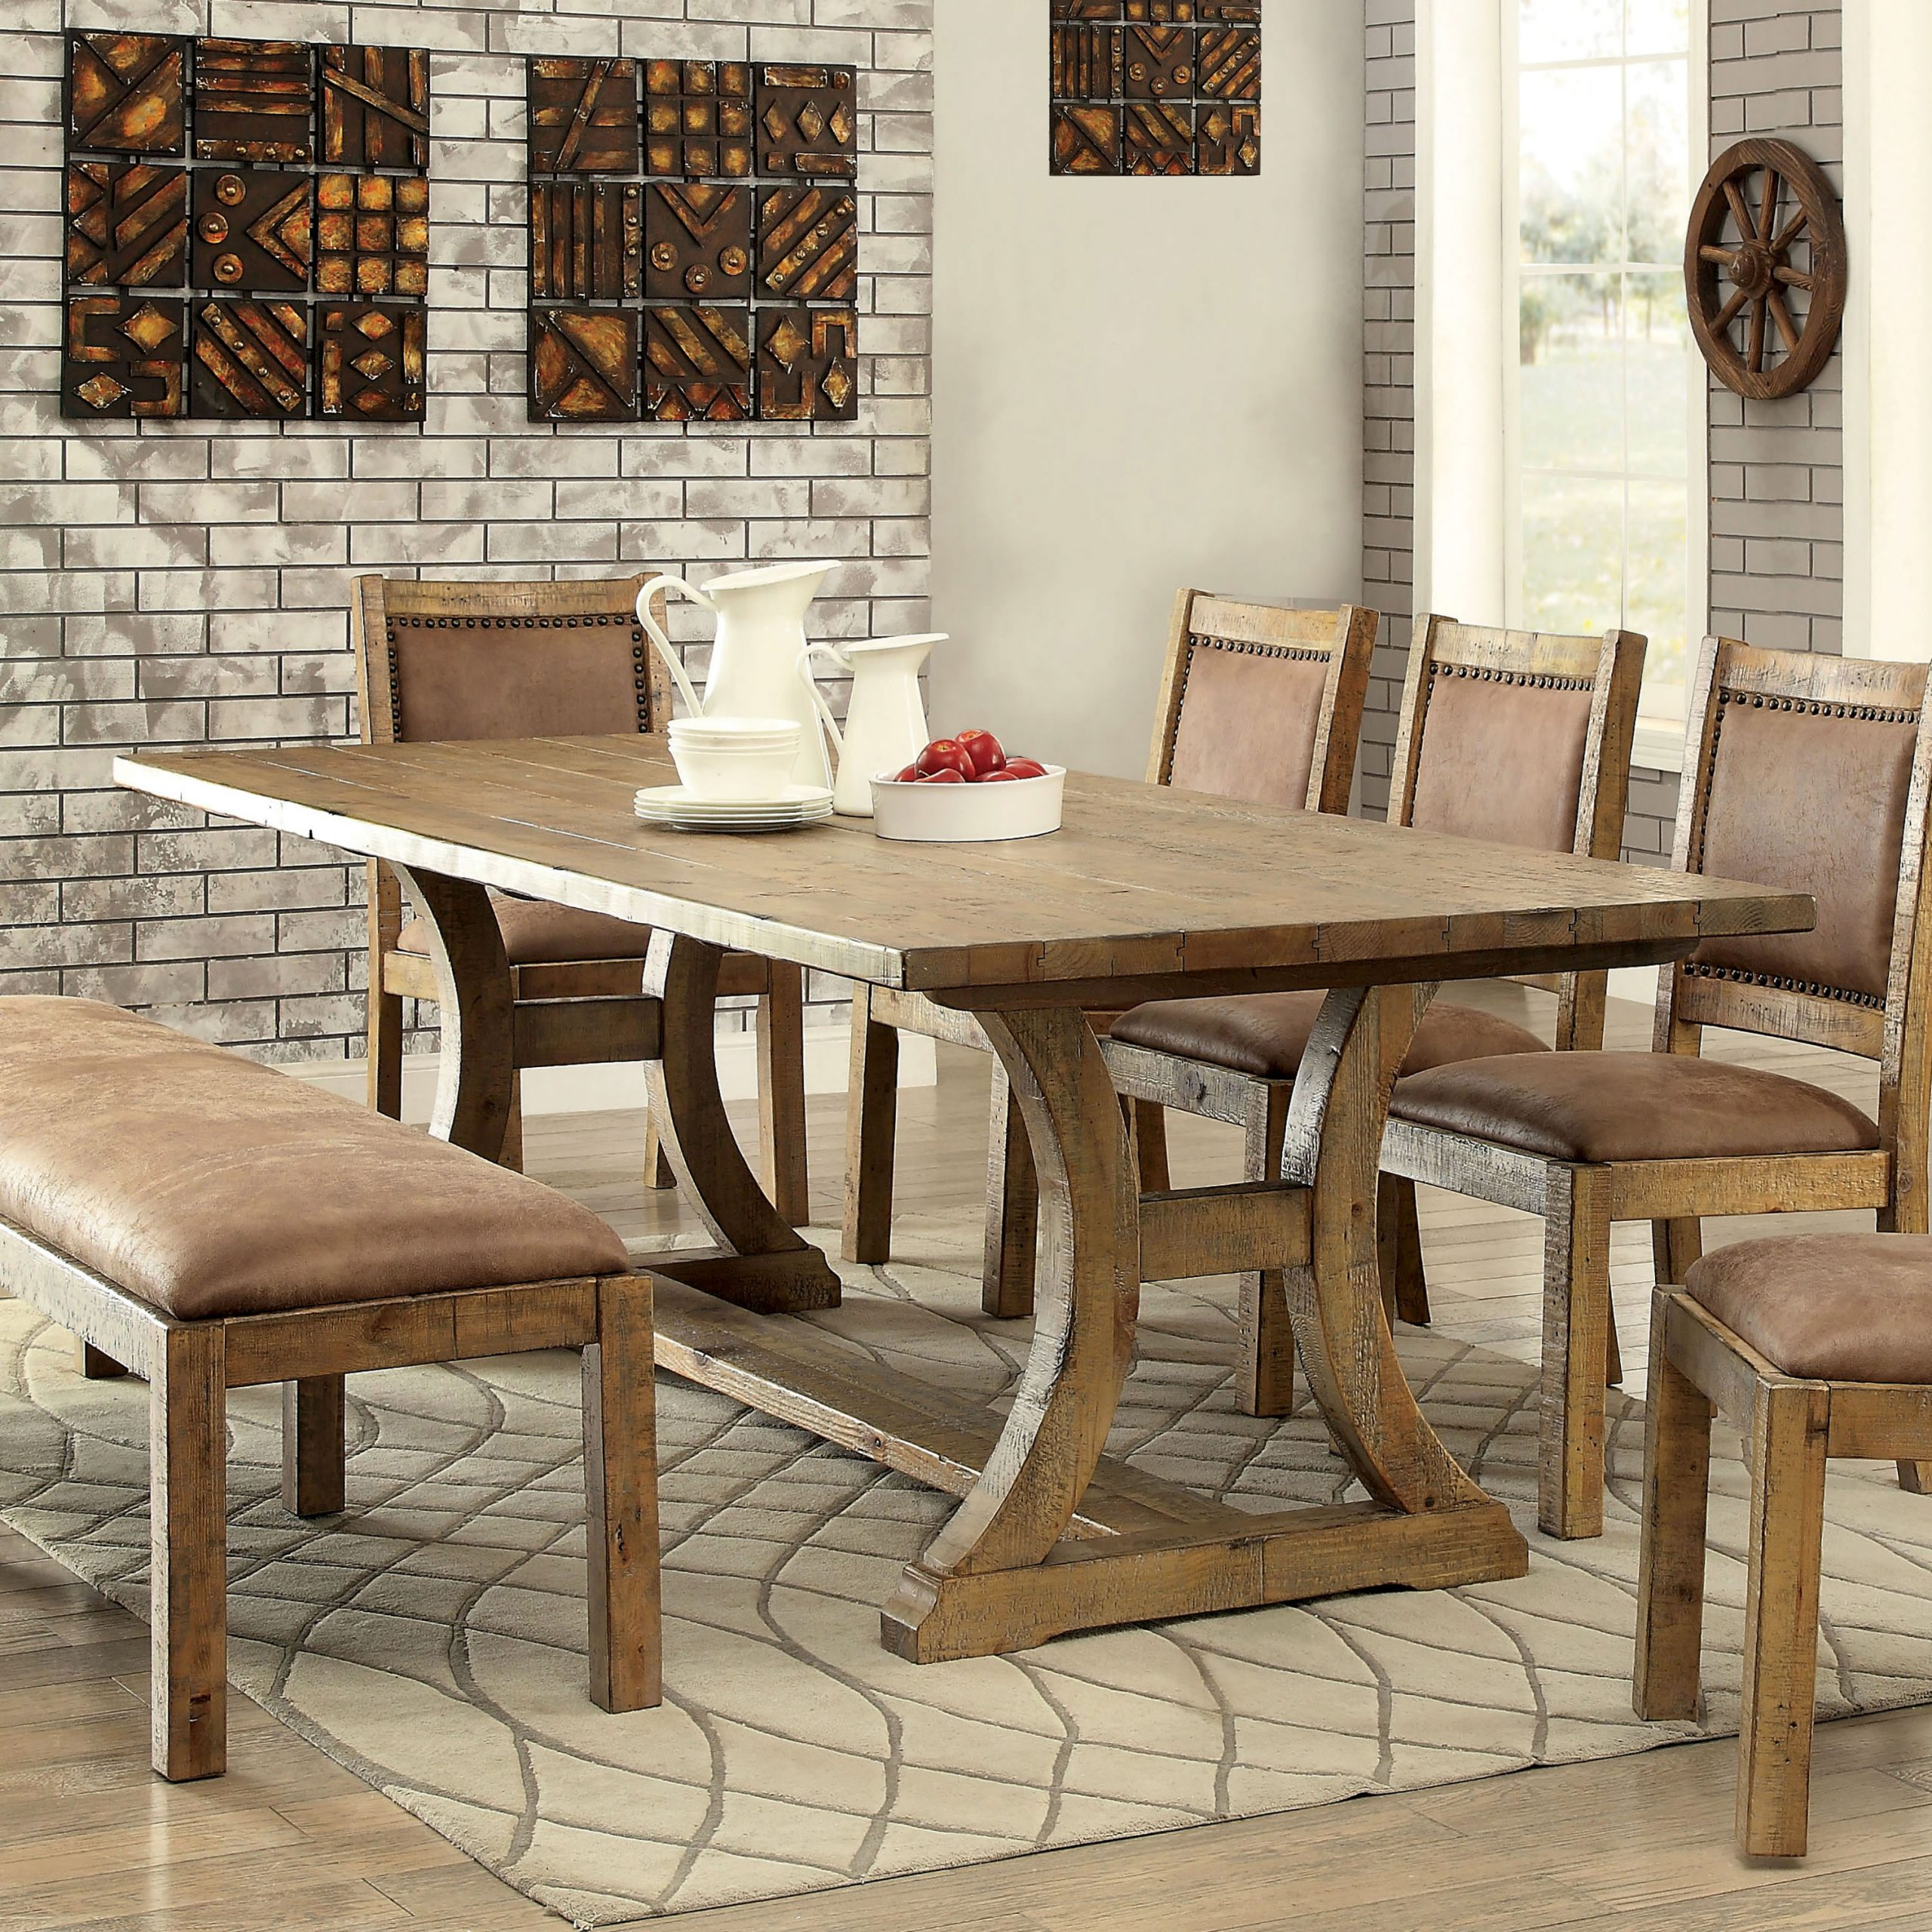 Furniture Of America Roseanne Trestle Base Dining Table Within 2018 Alexxia 38'' Trestle Dining Tables (View 14 of 15)